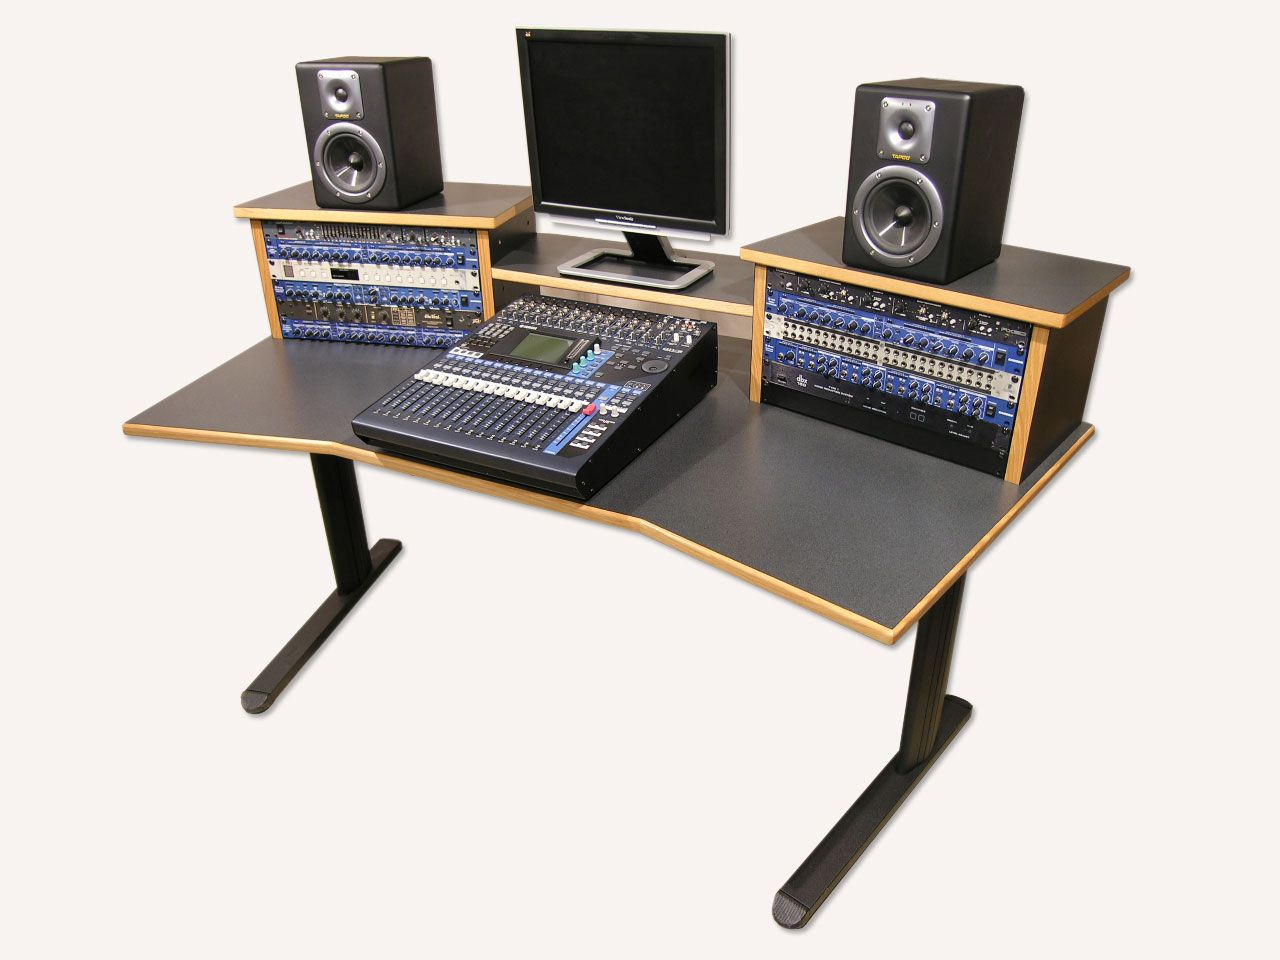 Wondrous How To Build A Home Recording Studio On A Budget Stayonbeat Com Largest Home Design Picture Inspirations Pitcheantrous